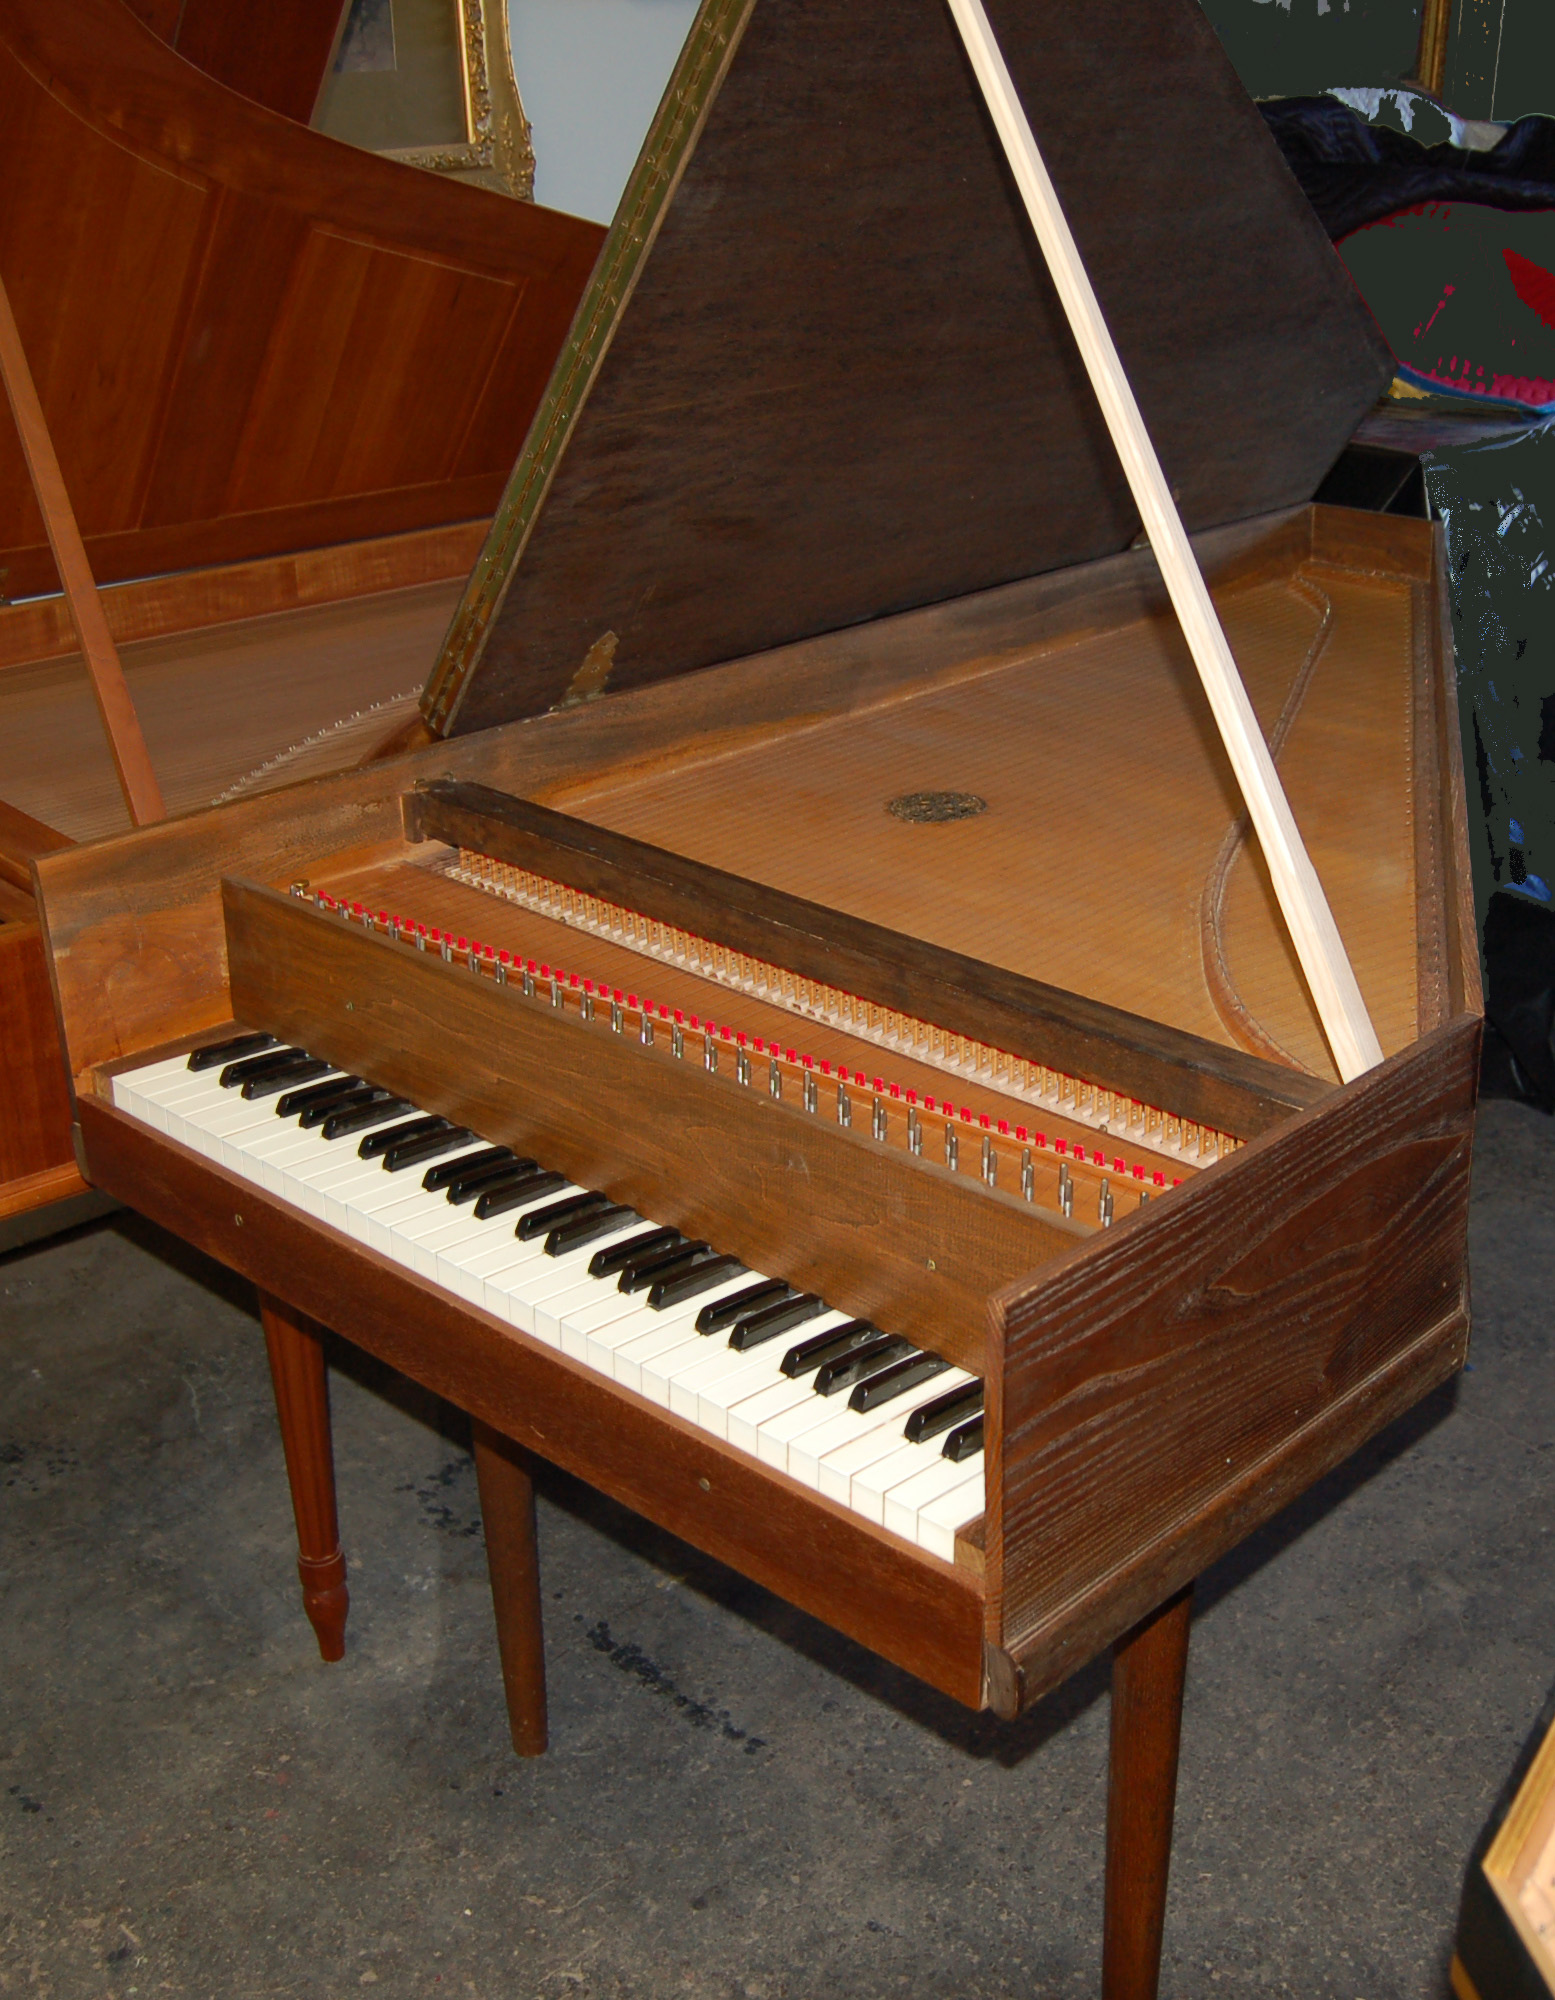 File:Zuckermann ZBox harpsichord.JPG - Wikimedia Commons